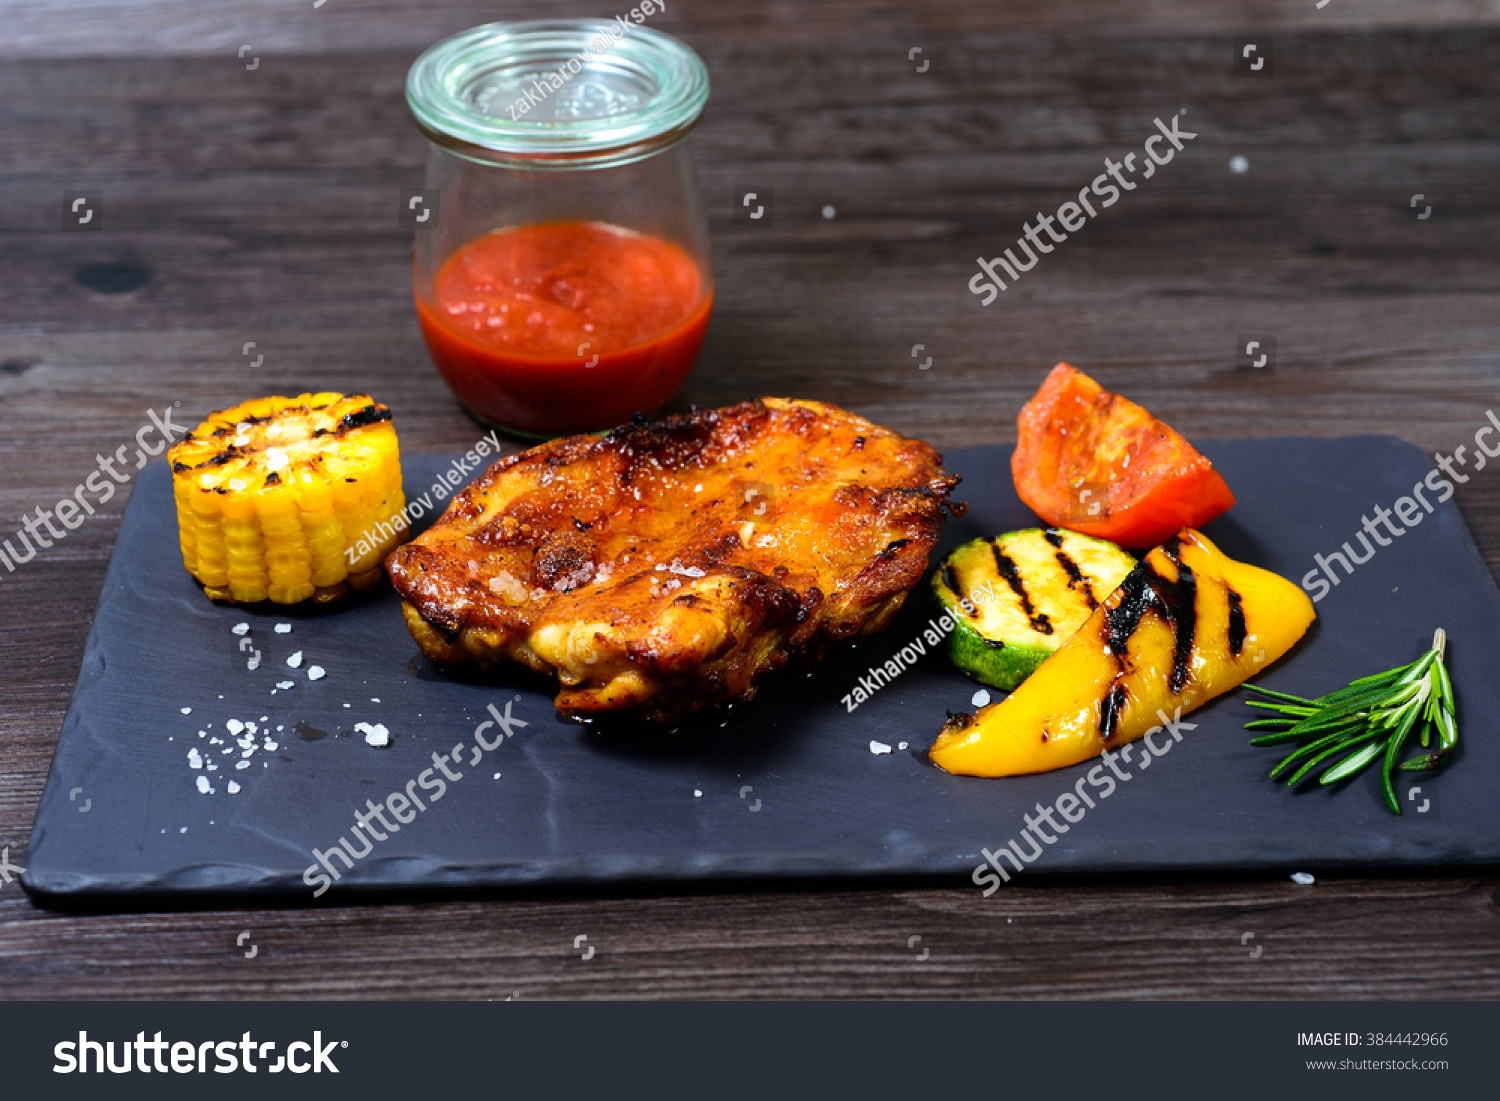 juicy grilled chicken with vegetables on a basalt slab #384442966